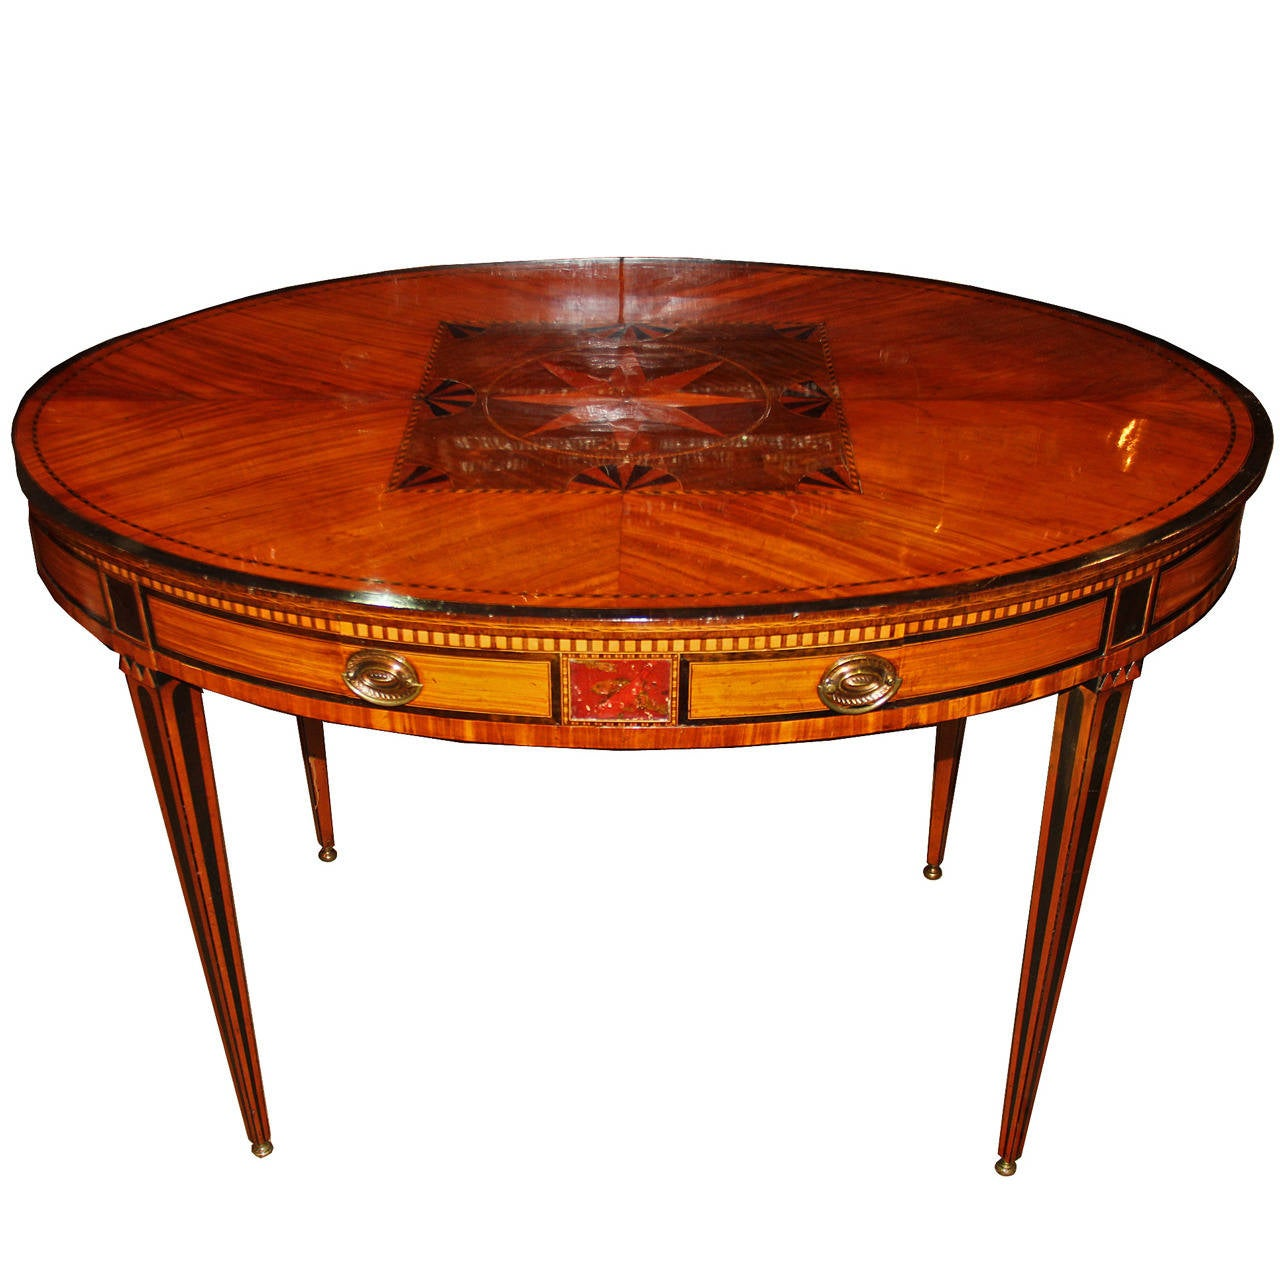 19th century english parquetry center table at 1stdibs for Table th center text